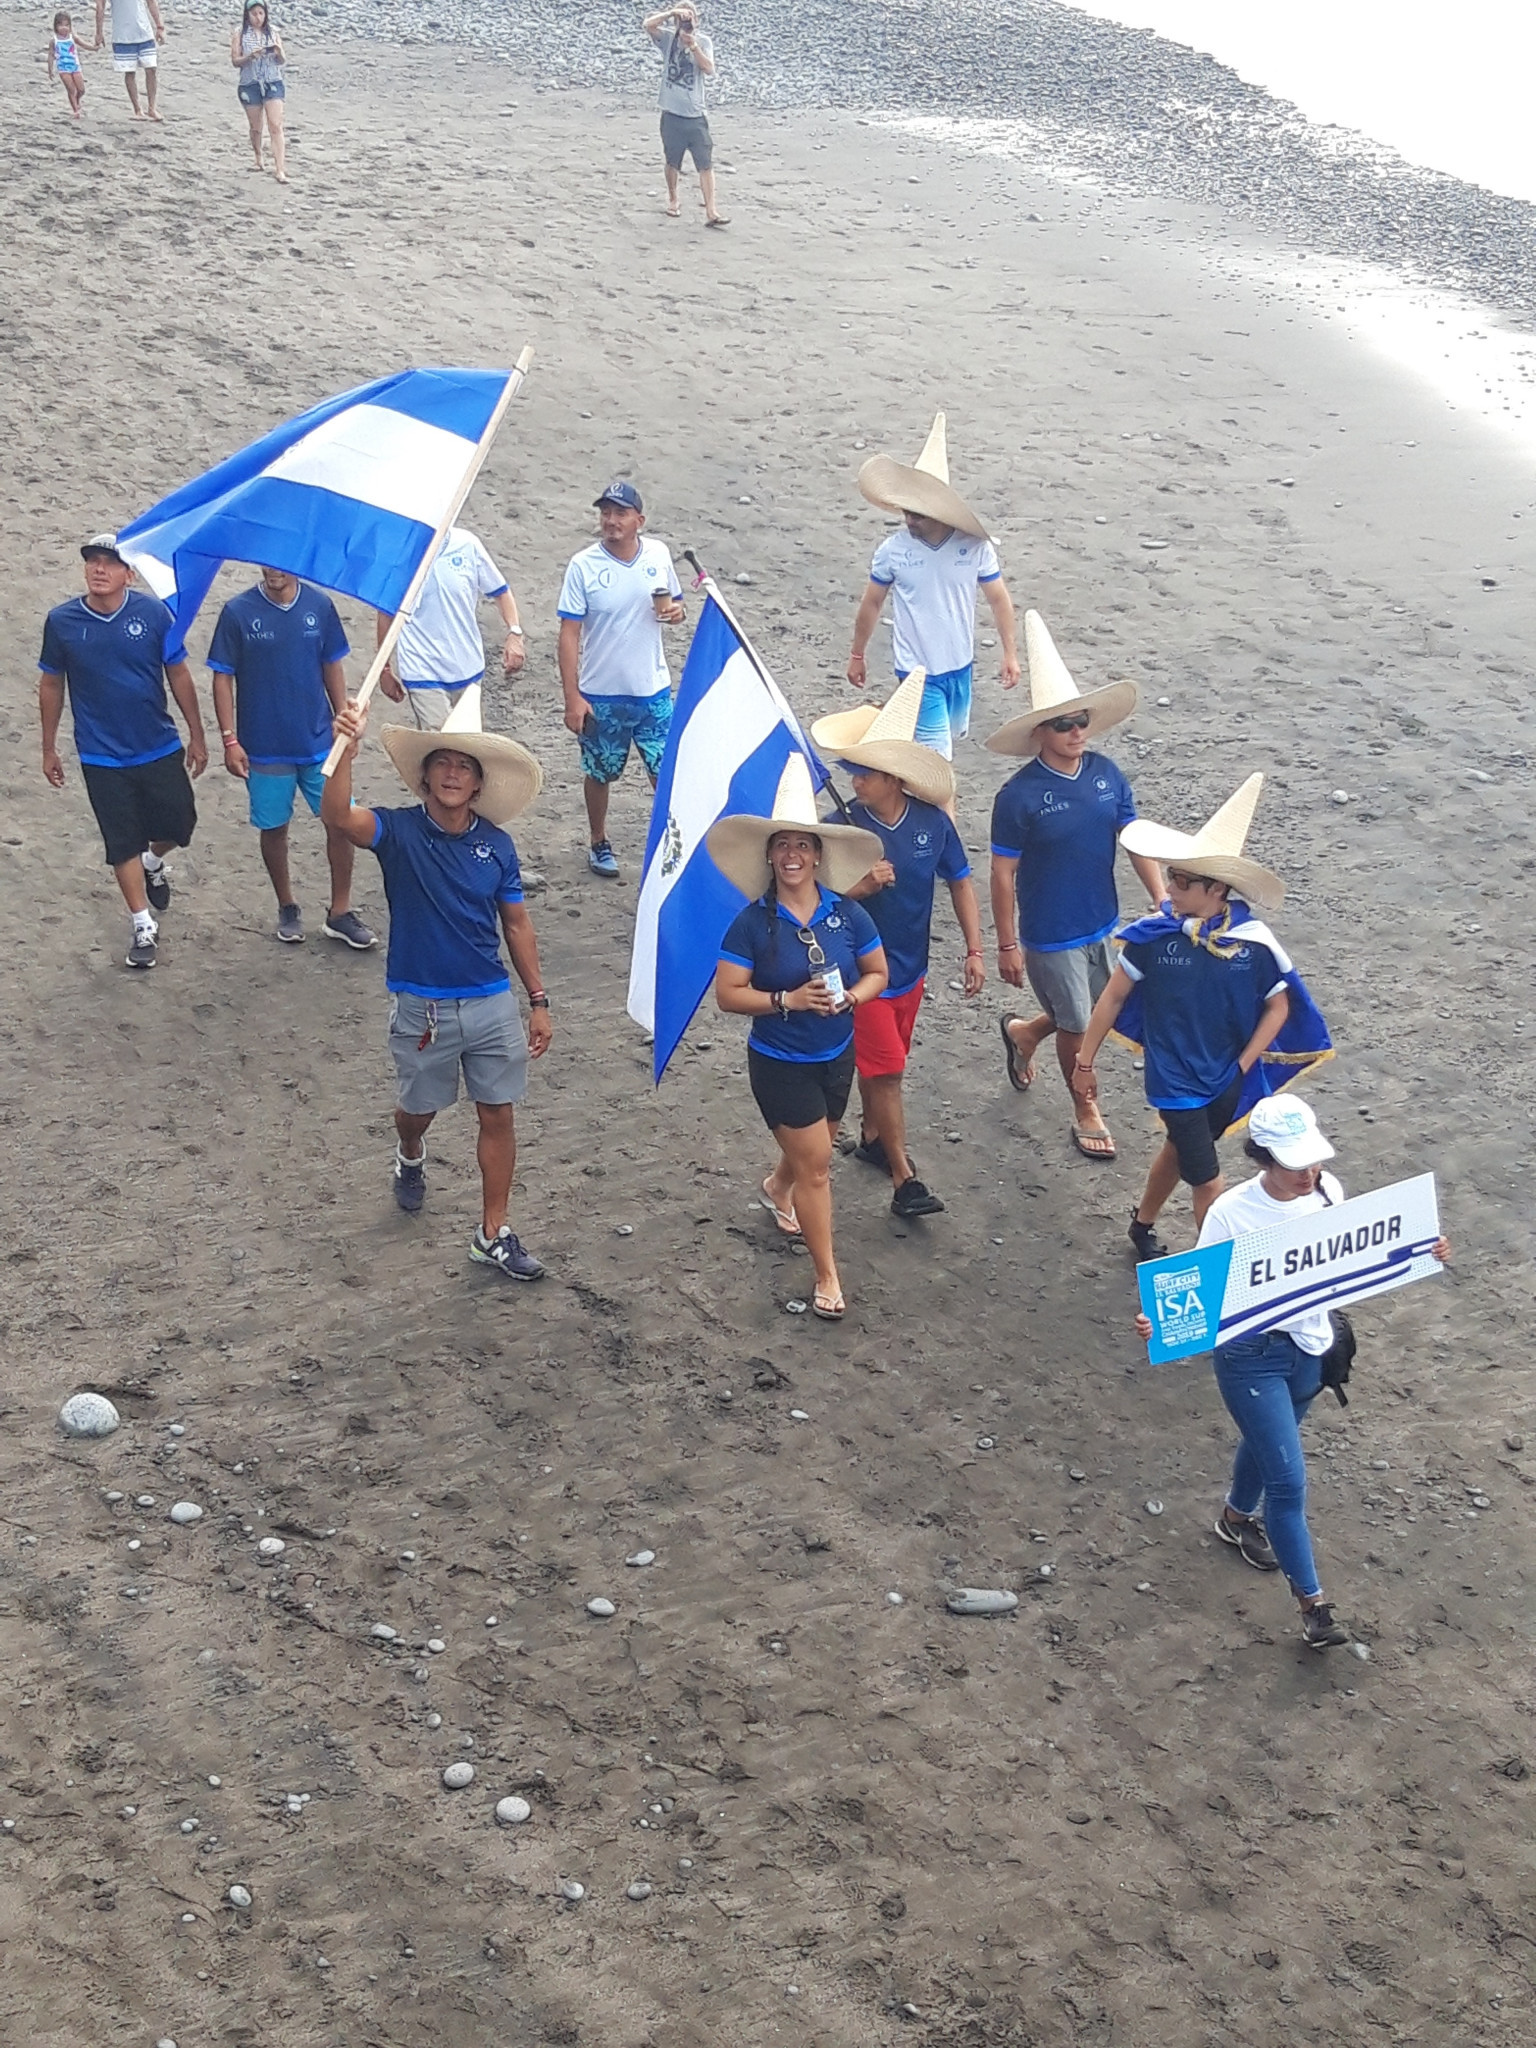 As the hosts, El Salvador were the last country in the parade of nations at El Sunzal ©ITG